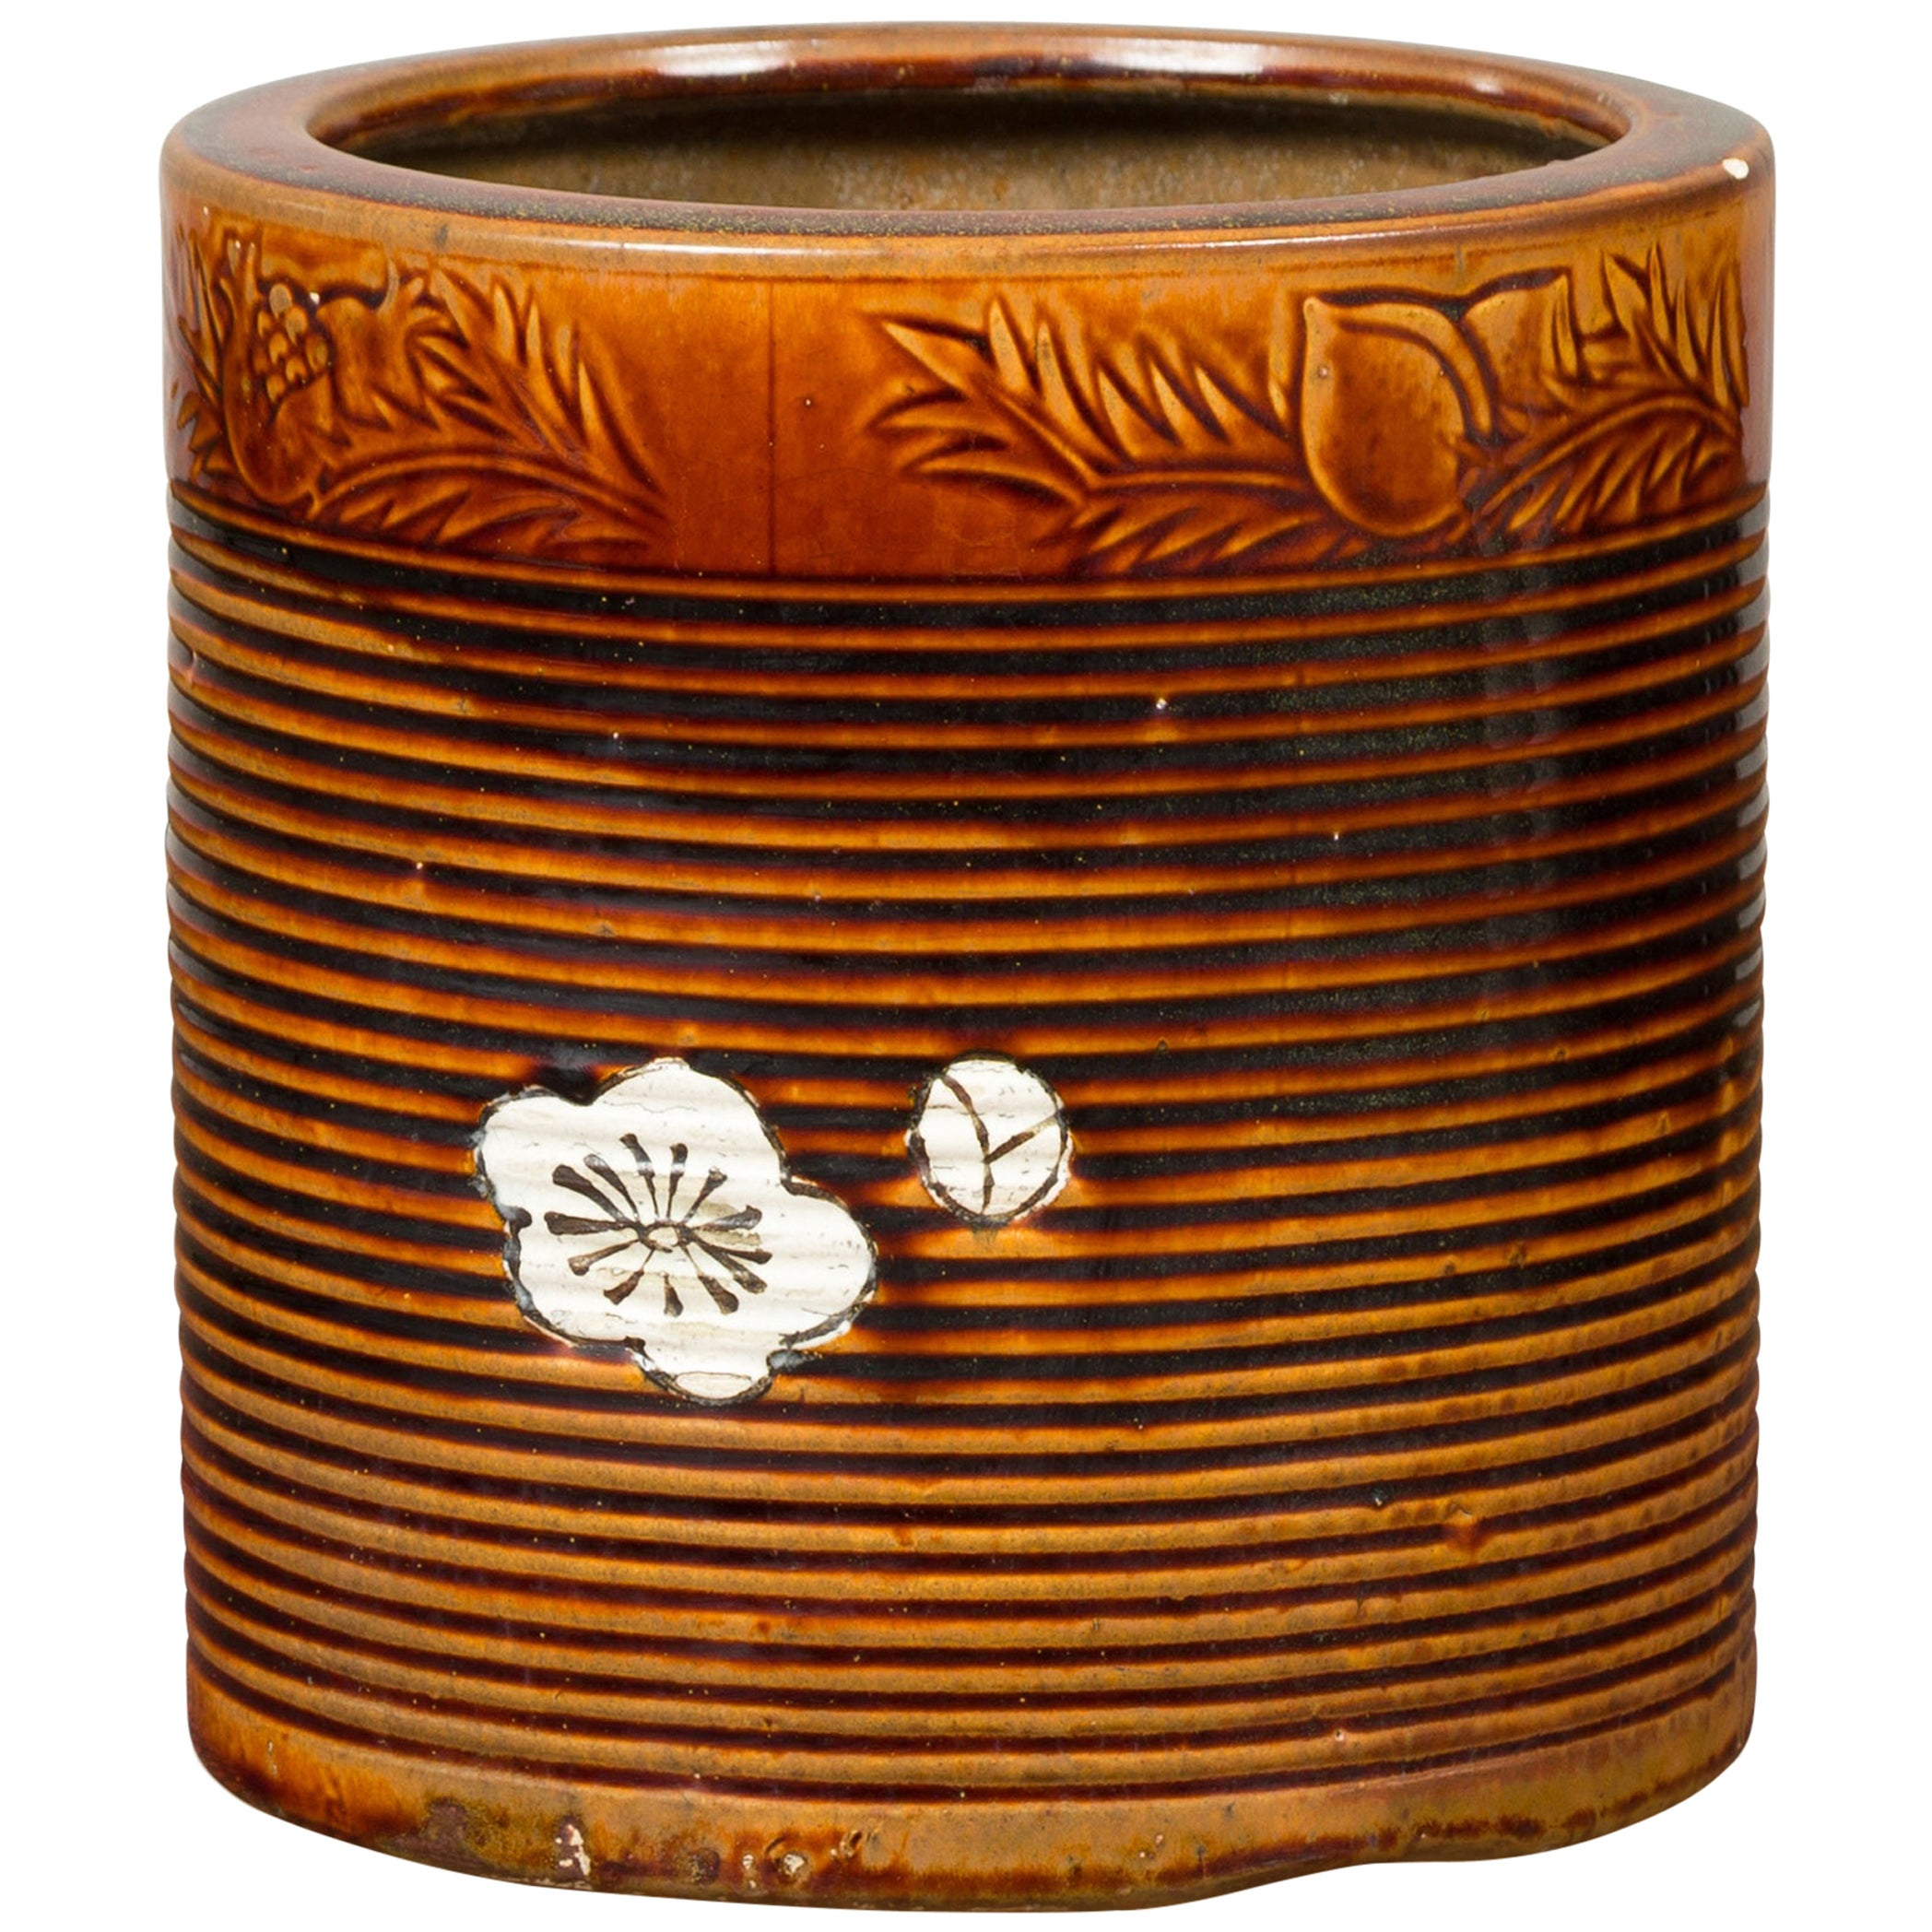 Japanese Meiji Period 19th Century Hibachi Planter with Burnt Patina and Flower